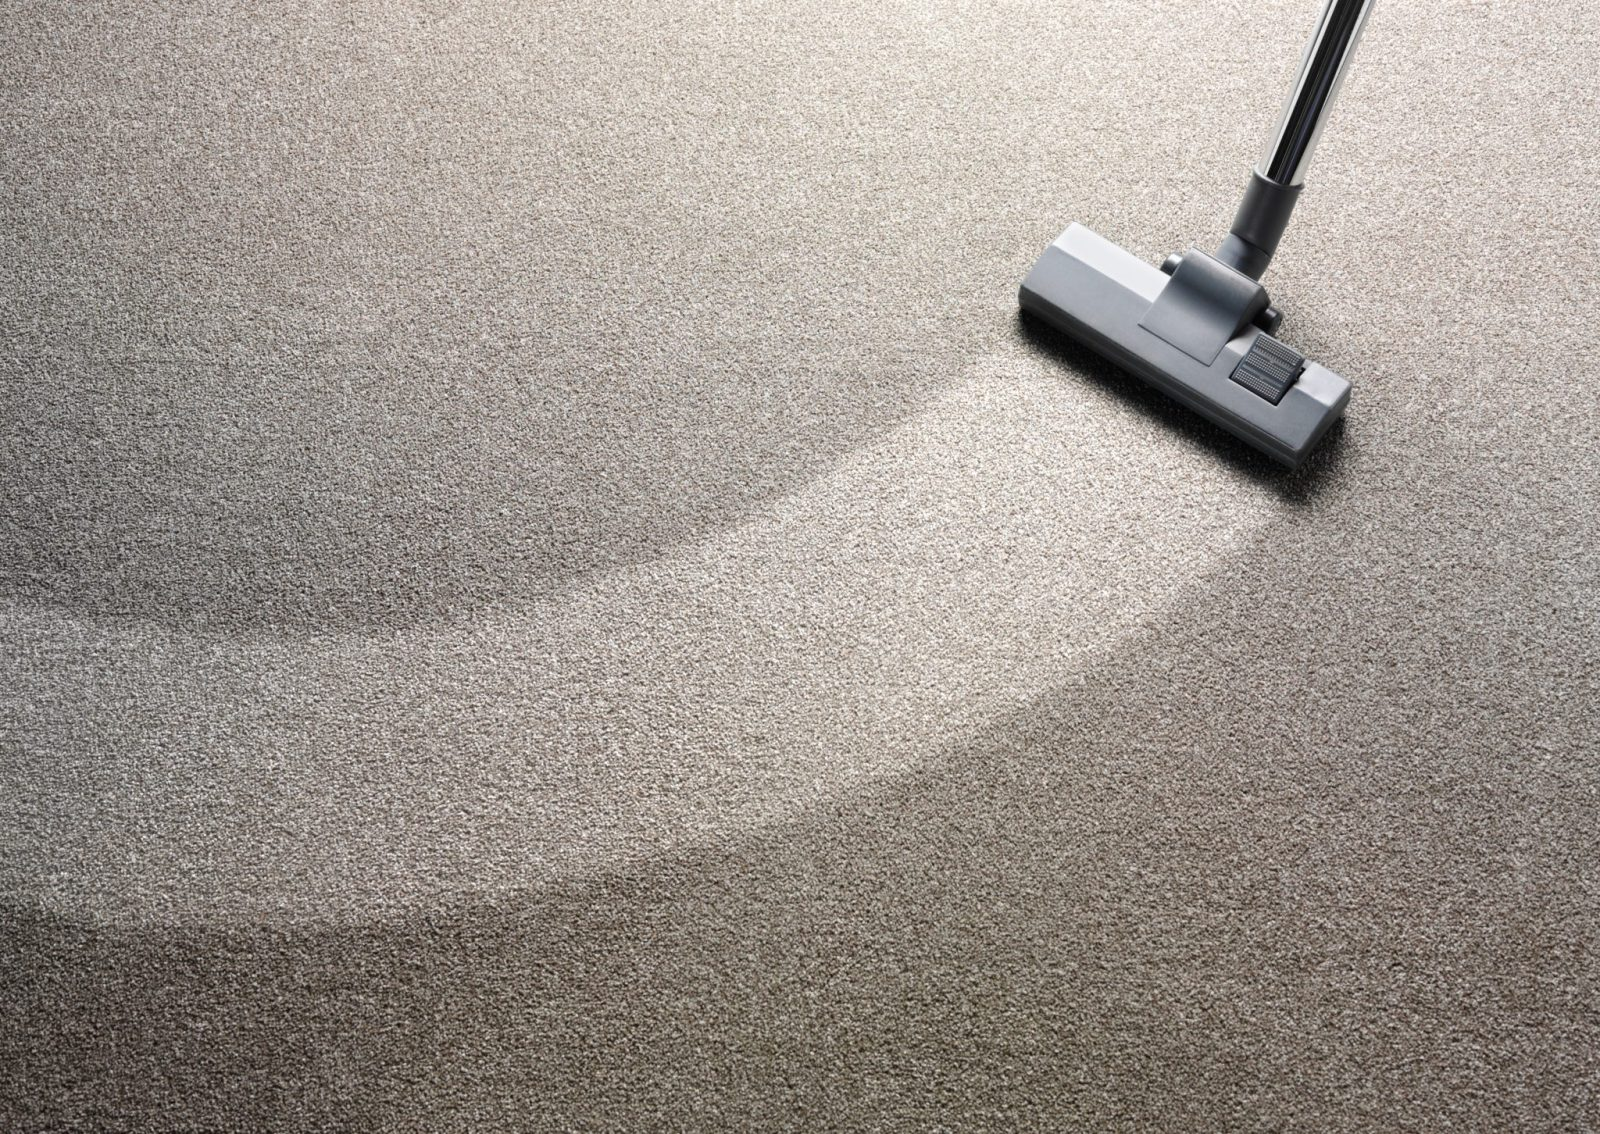 Carpet flooring care and maintenance | Webb Carpet